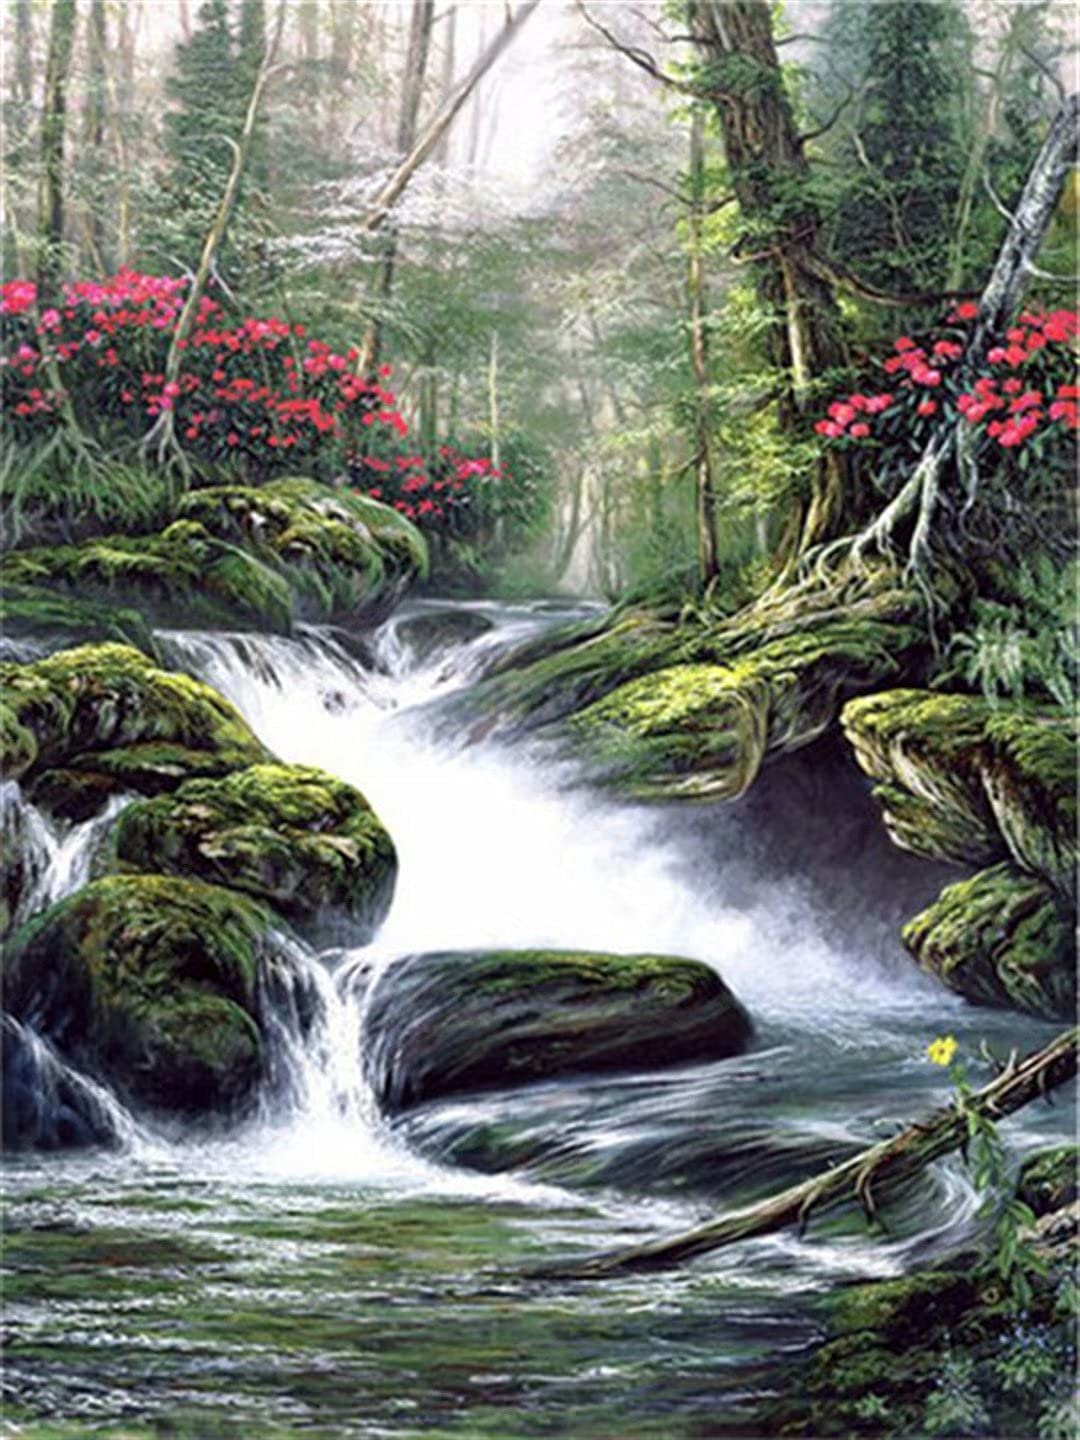 Mstoio 6000 Piece Wooden Jigsaw Large Puzzle Waterfall Finally popular brand Outlet ☆ Free Shipping Puzz